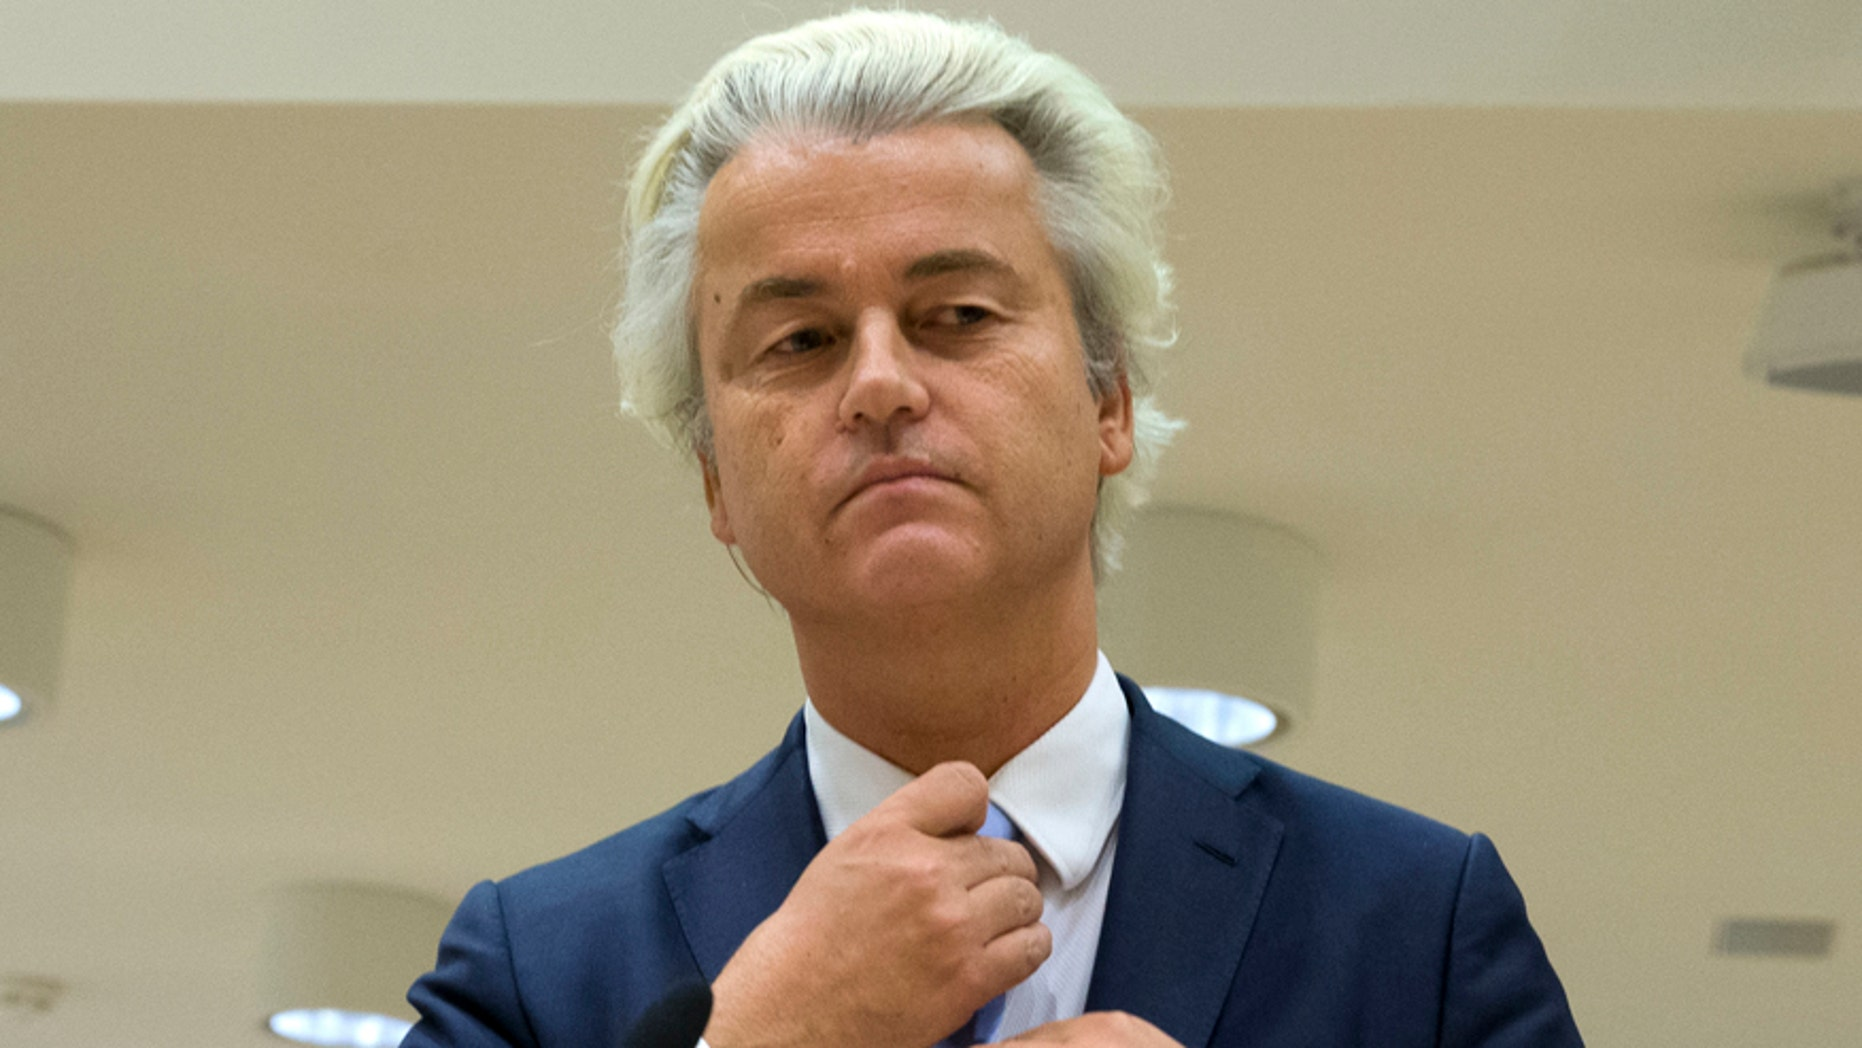 Nov. 23, 2016: Geert Wilders prepares to address judges at a high-security court near Schiphol Airport, Amsterdam.